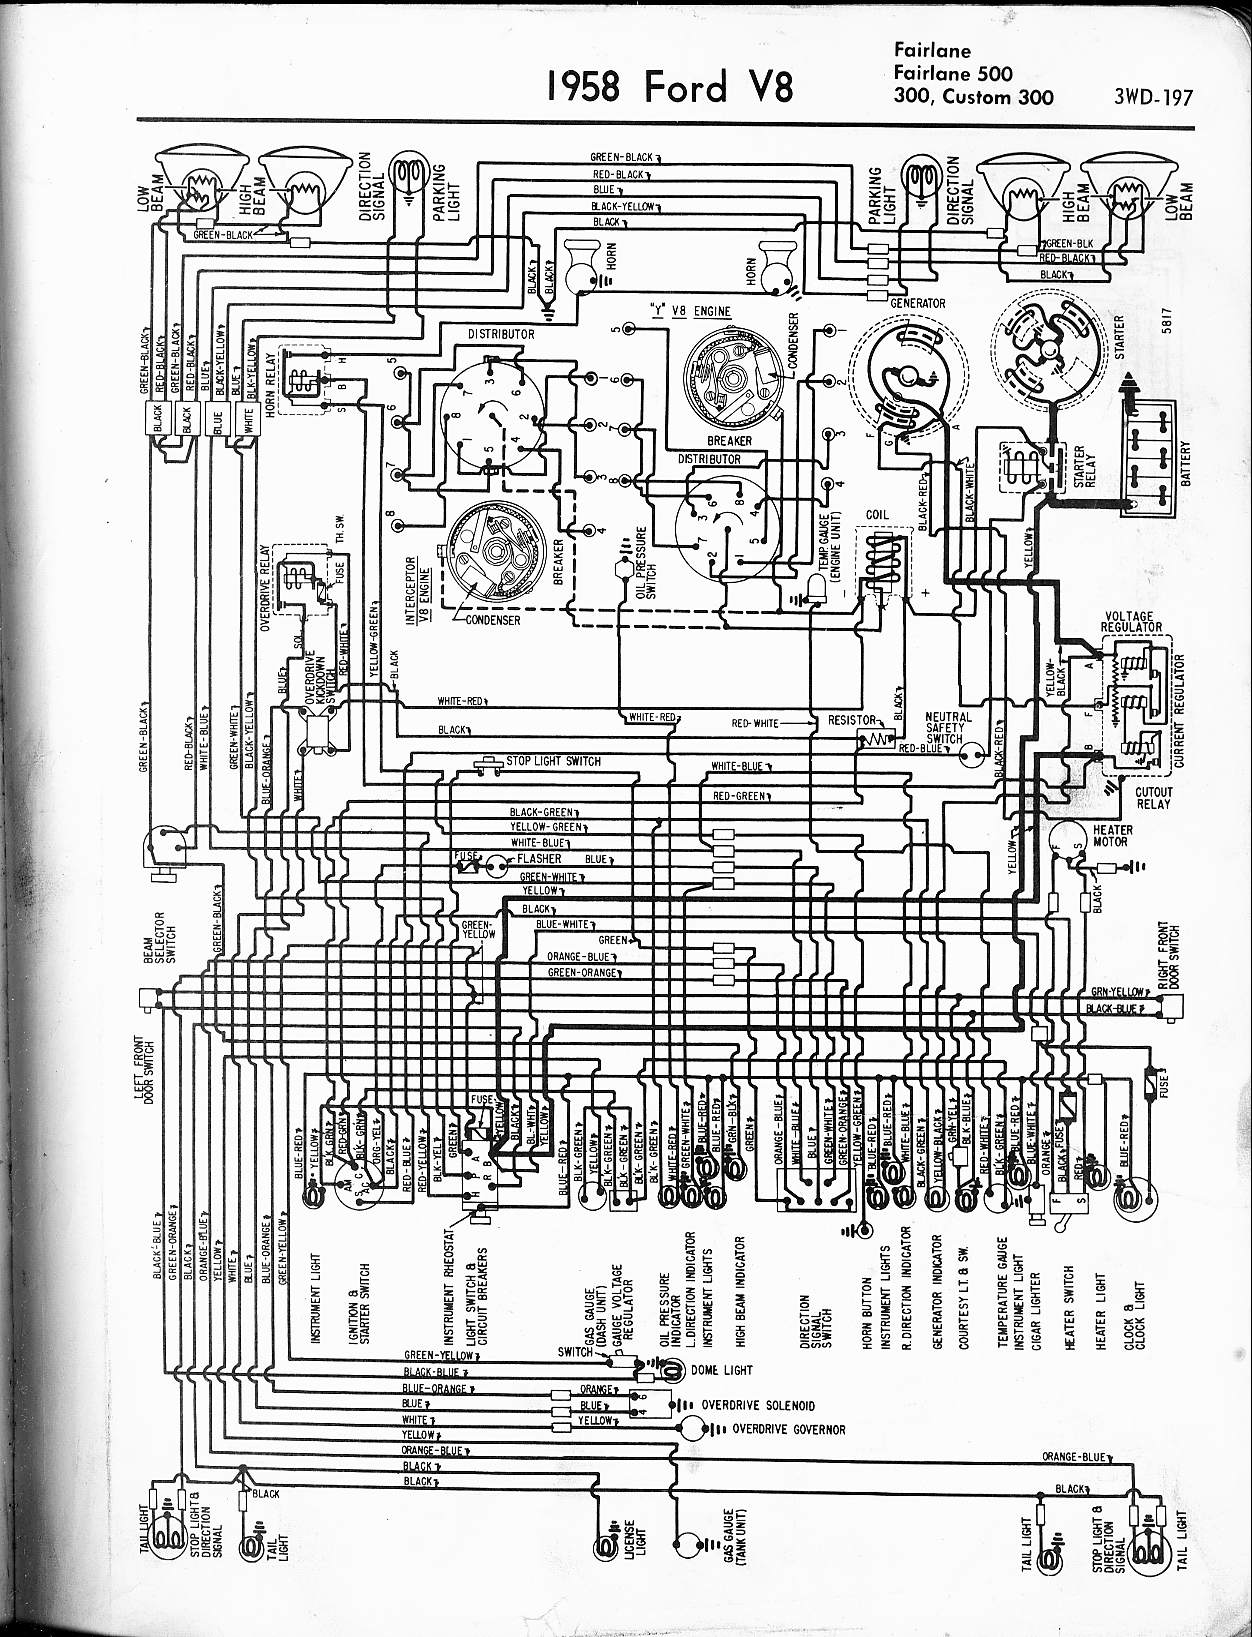 1966 Ranchero Wiring Diagram Everything About Gator 625i 57 65 Ford Diagrams Rh Oldcarmanualproject Com Chevelle Mustang Schematic